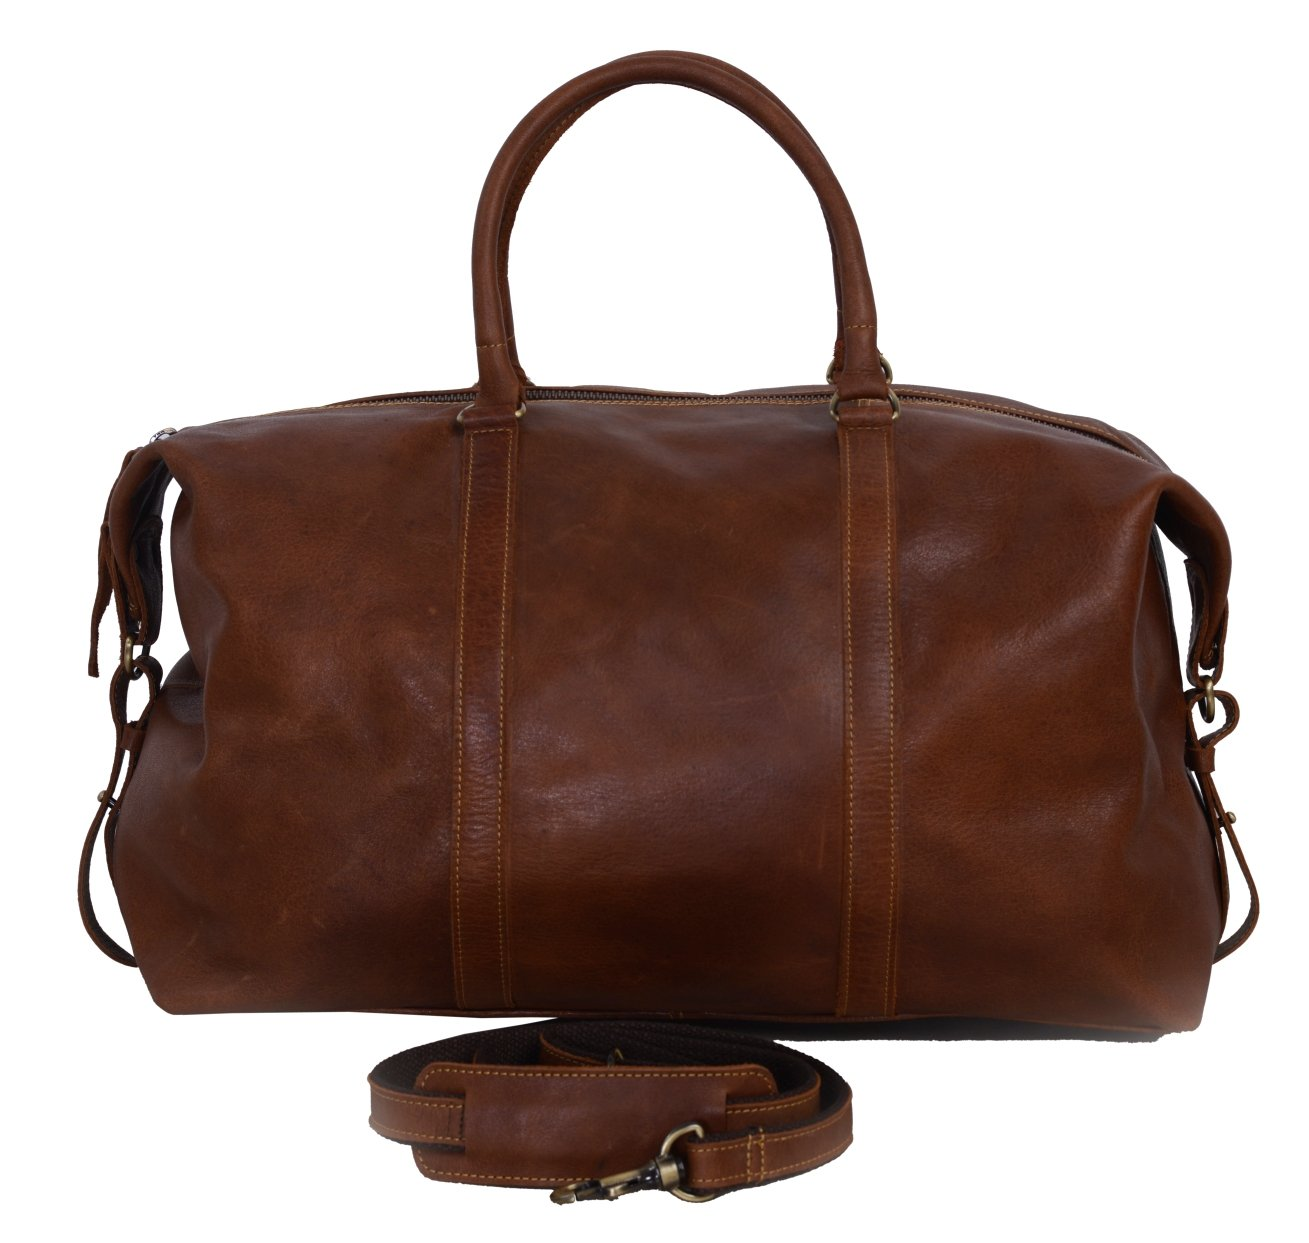 KomalC Soft Buffalo Leather 21 Inch Duffel Holdall Travel Sports Overnight Weekend Tote Leather Bag for Gym Sports Cabin Tan Brown